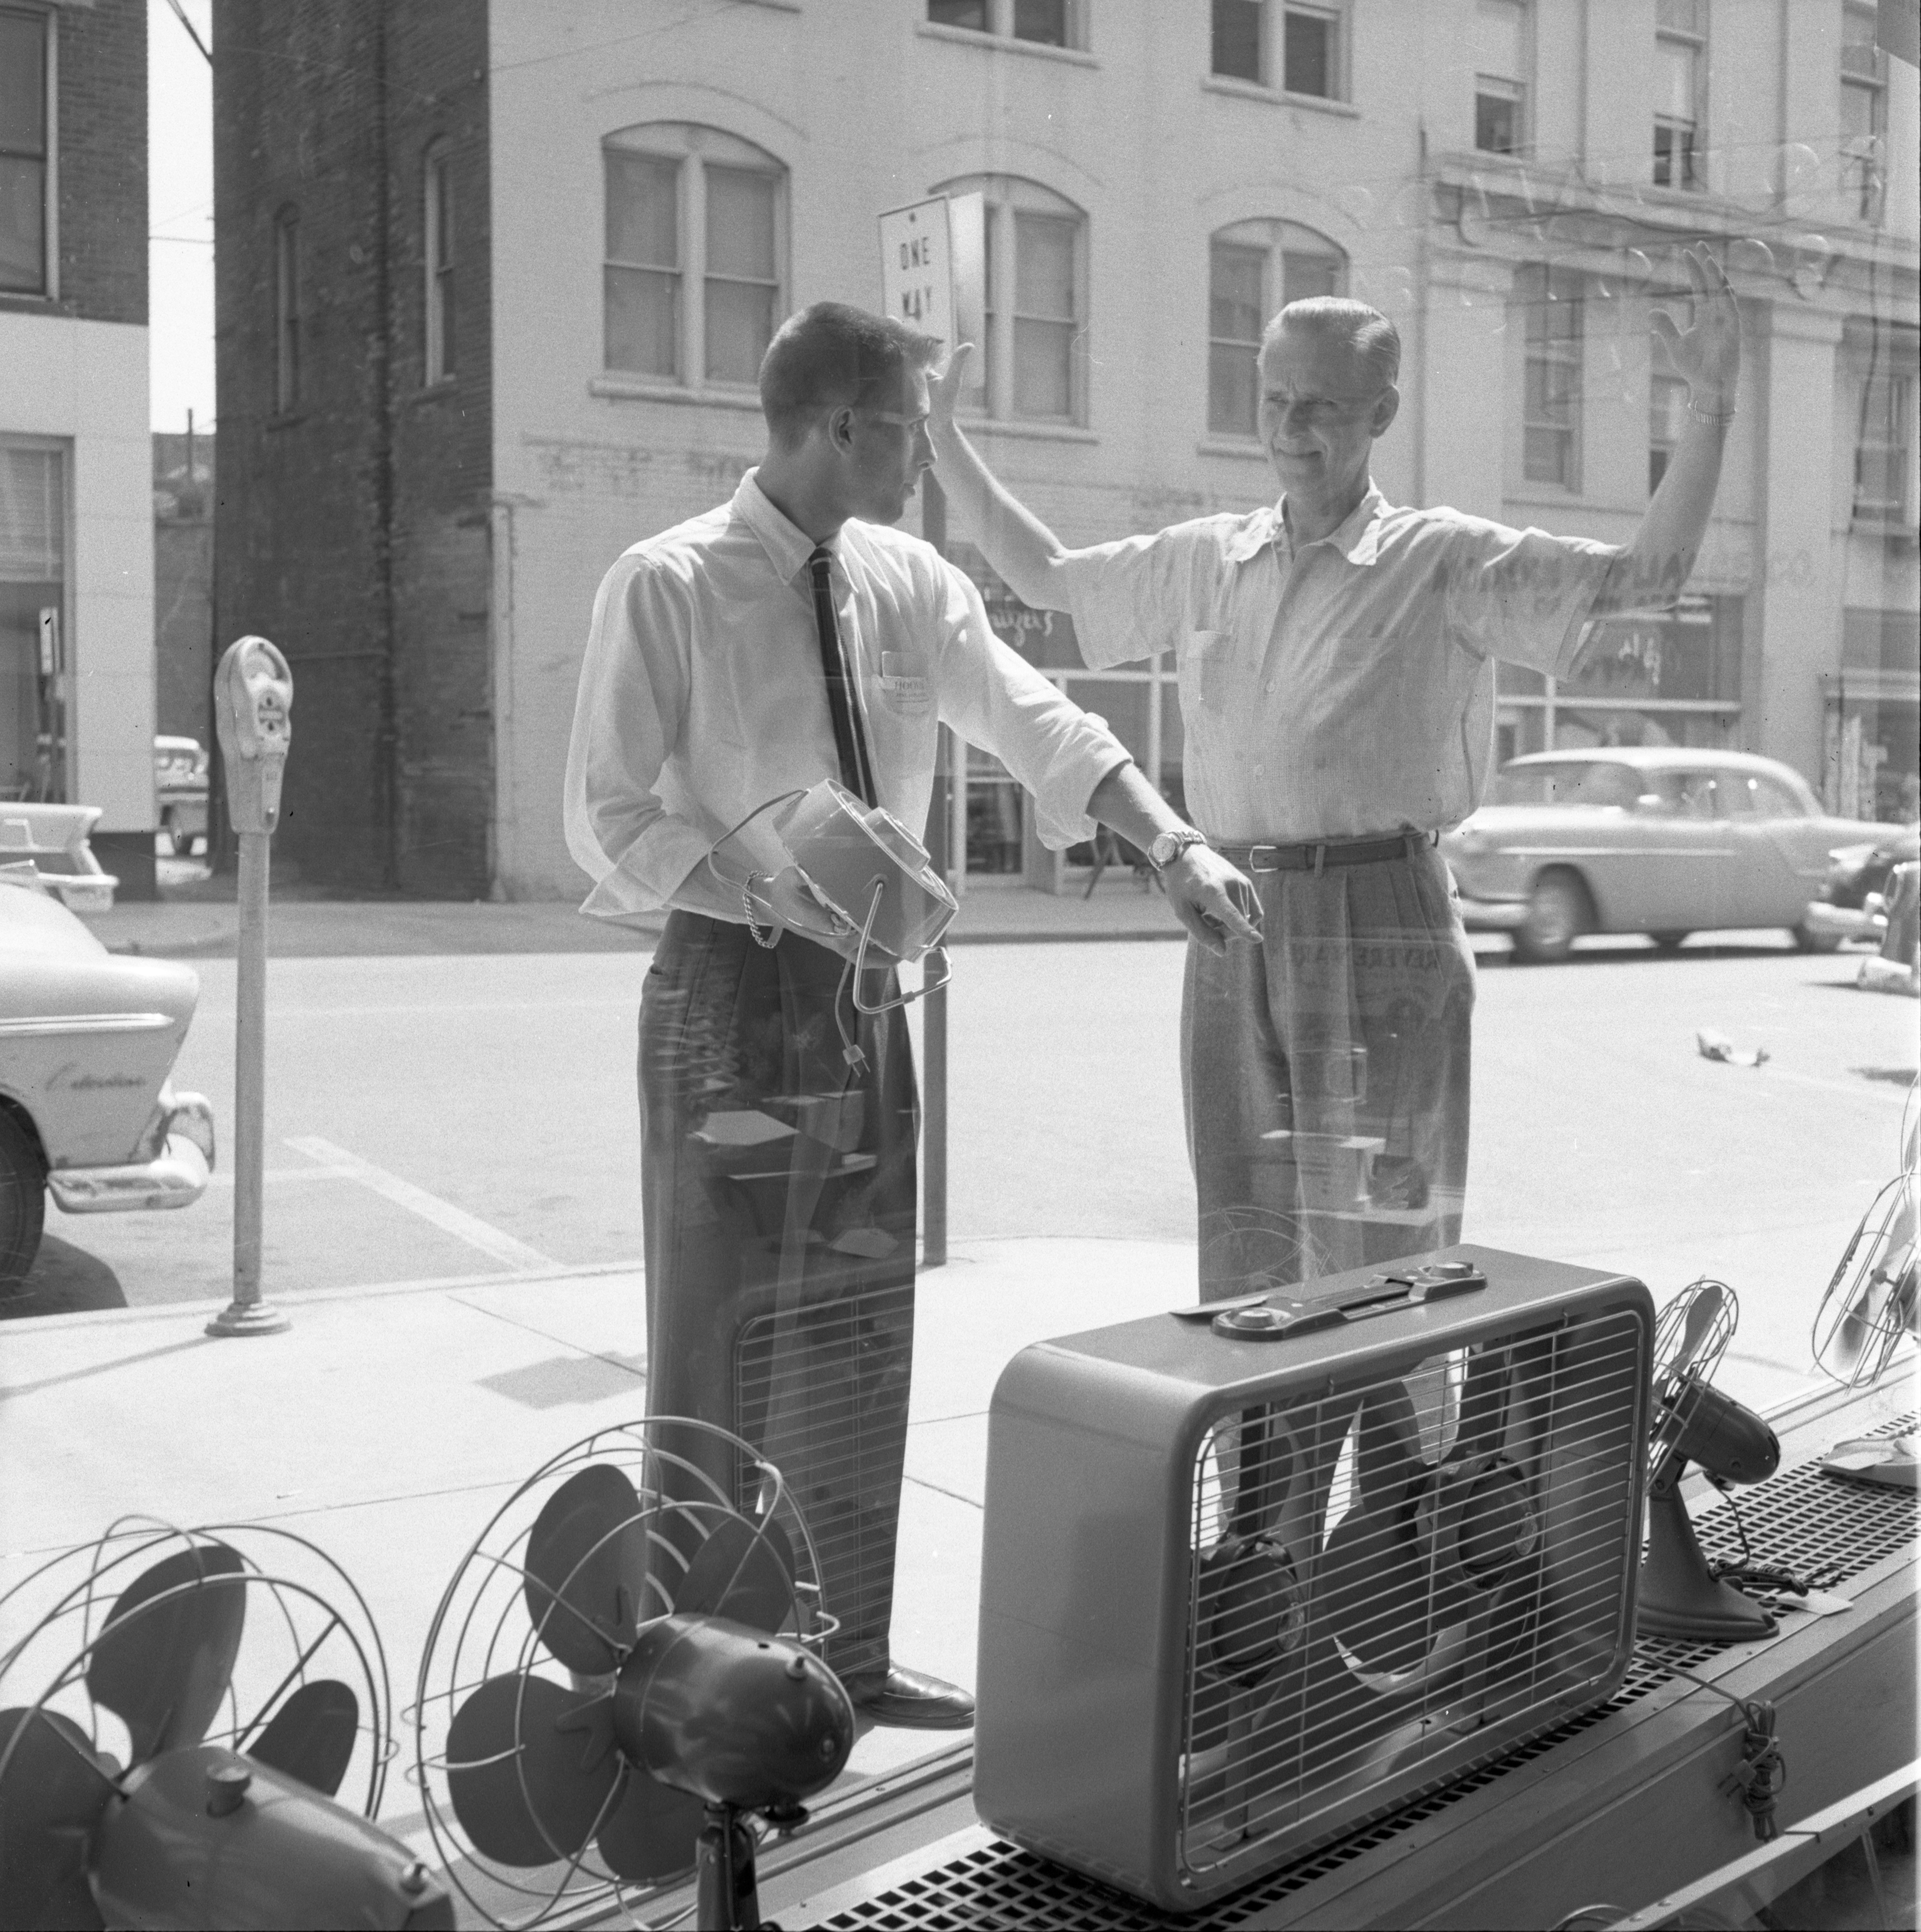 Jeff Rentschler & Coleman Mummery Outside The Hoover Co. Store - 115 E. Liberty Street, June 1956 image